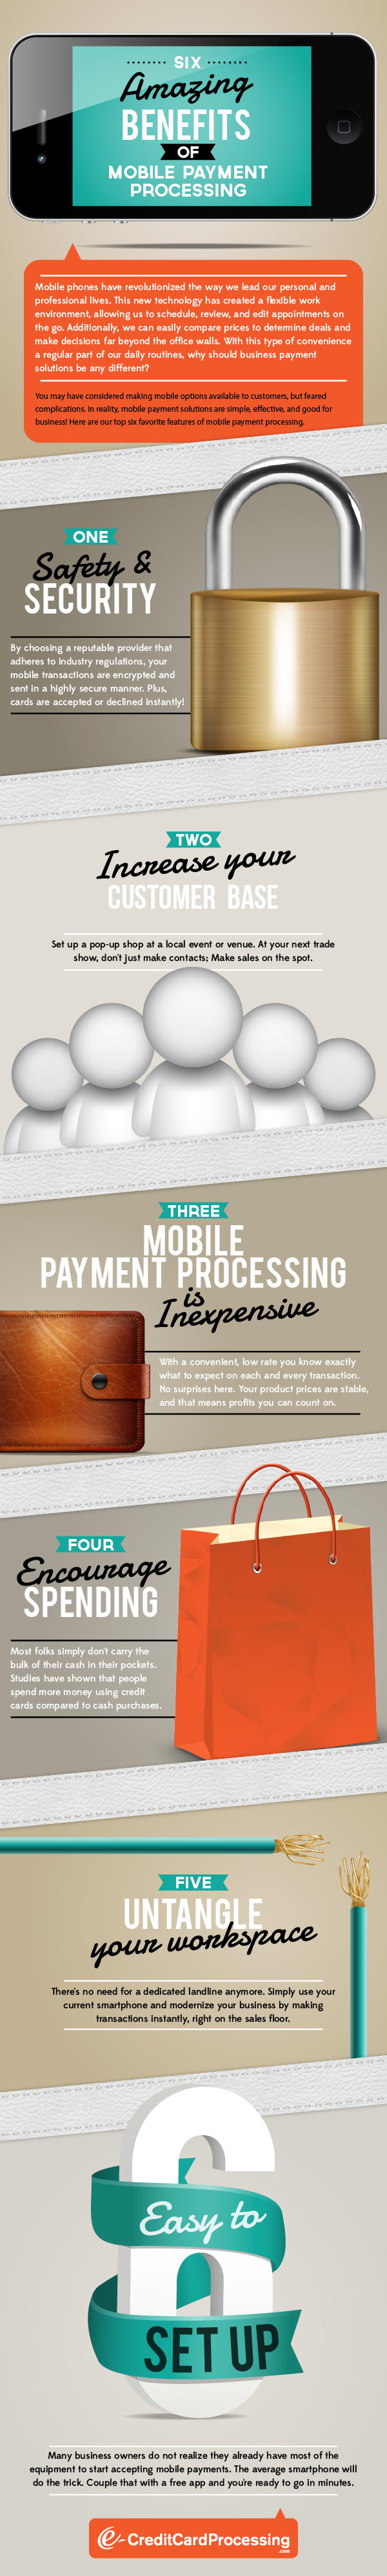 Six Amazing Benefits of Mobile Payment Processing (Infographic)